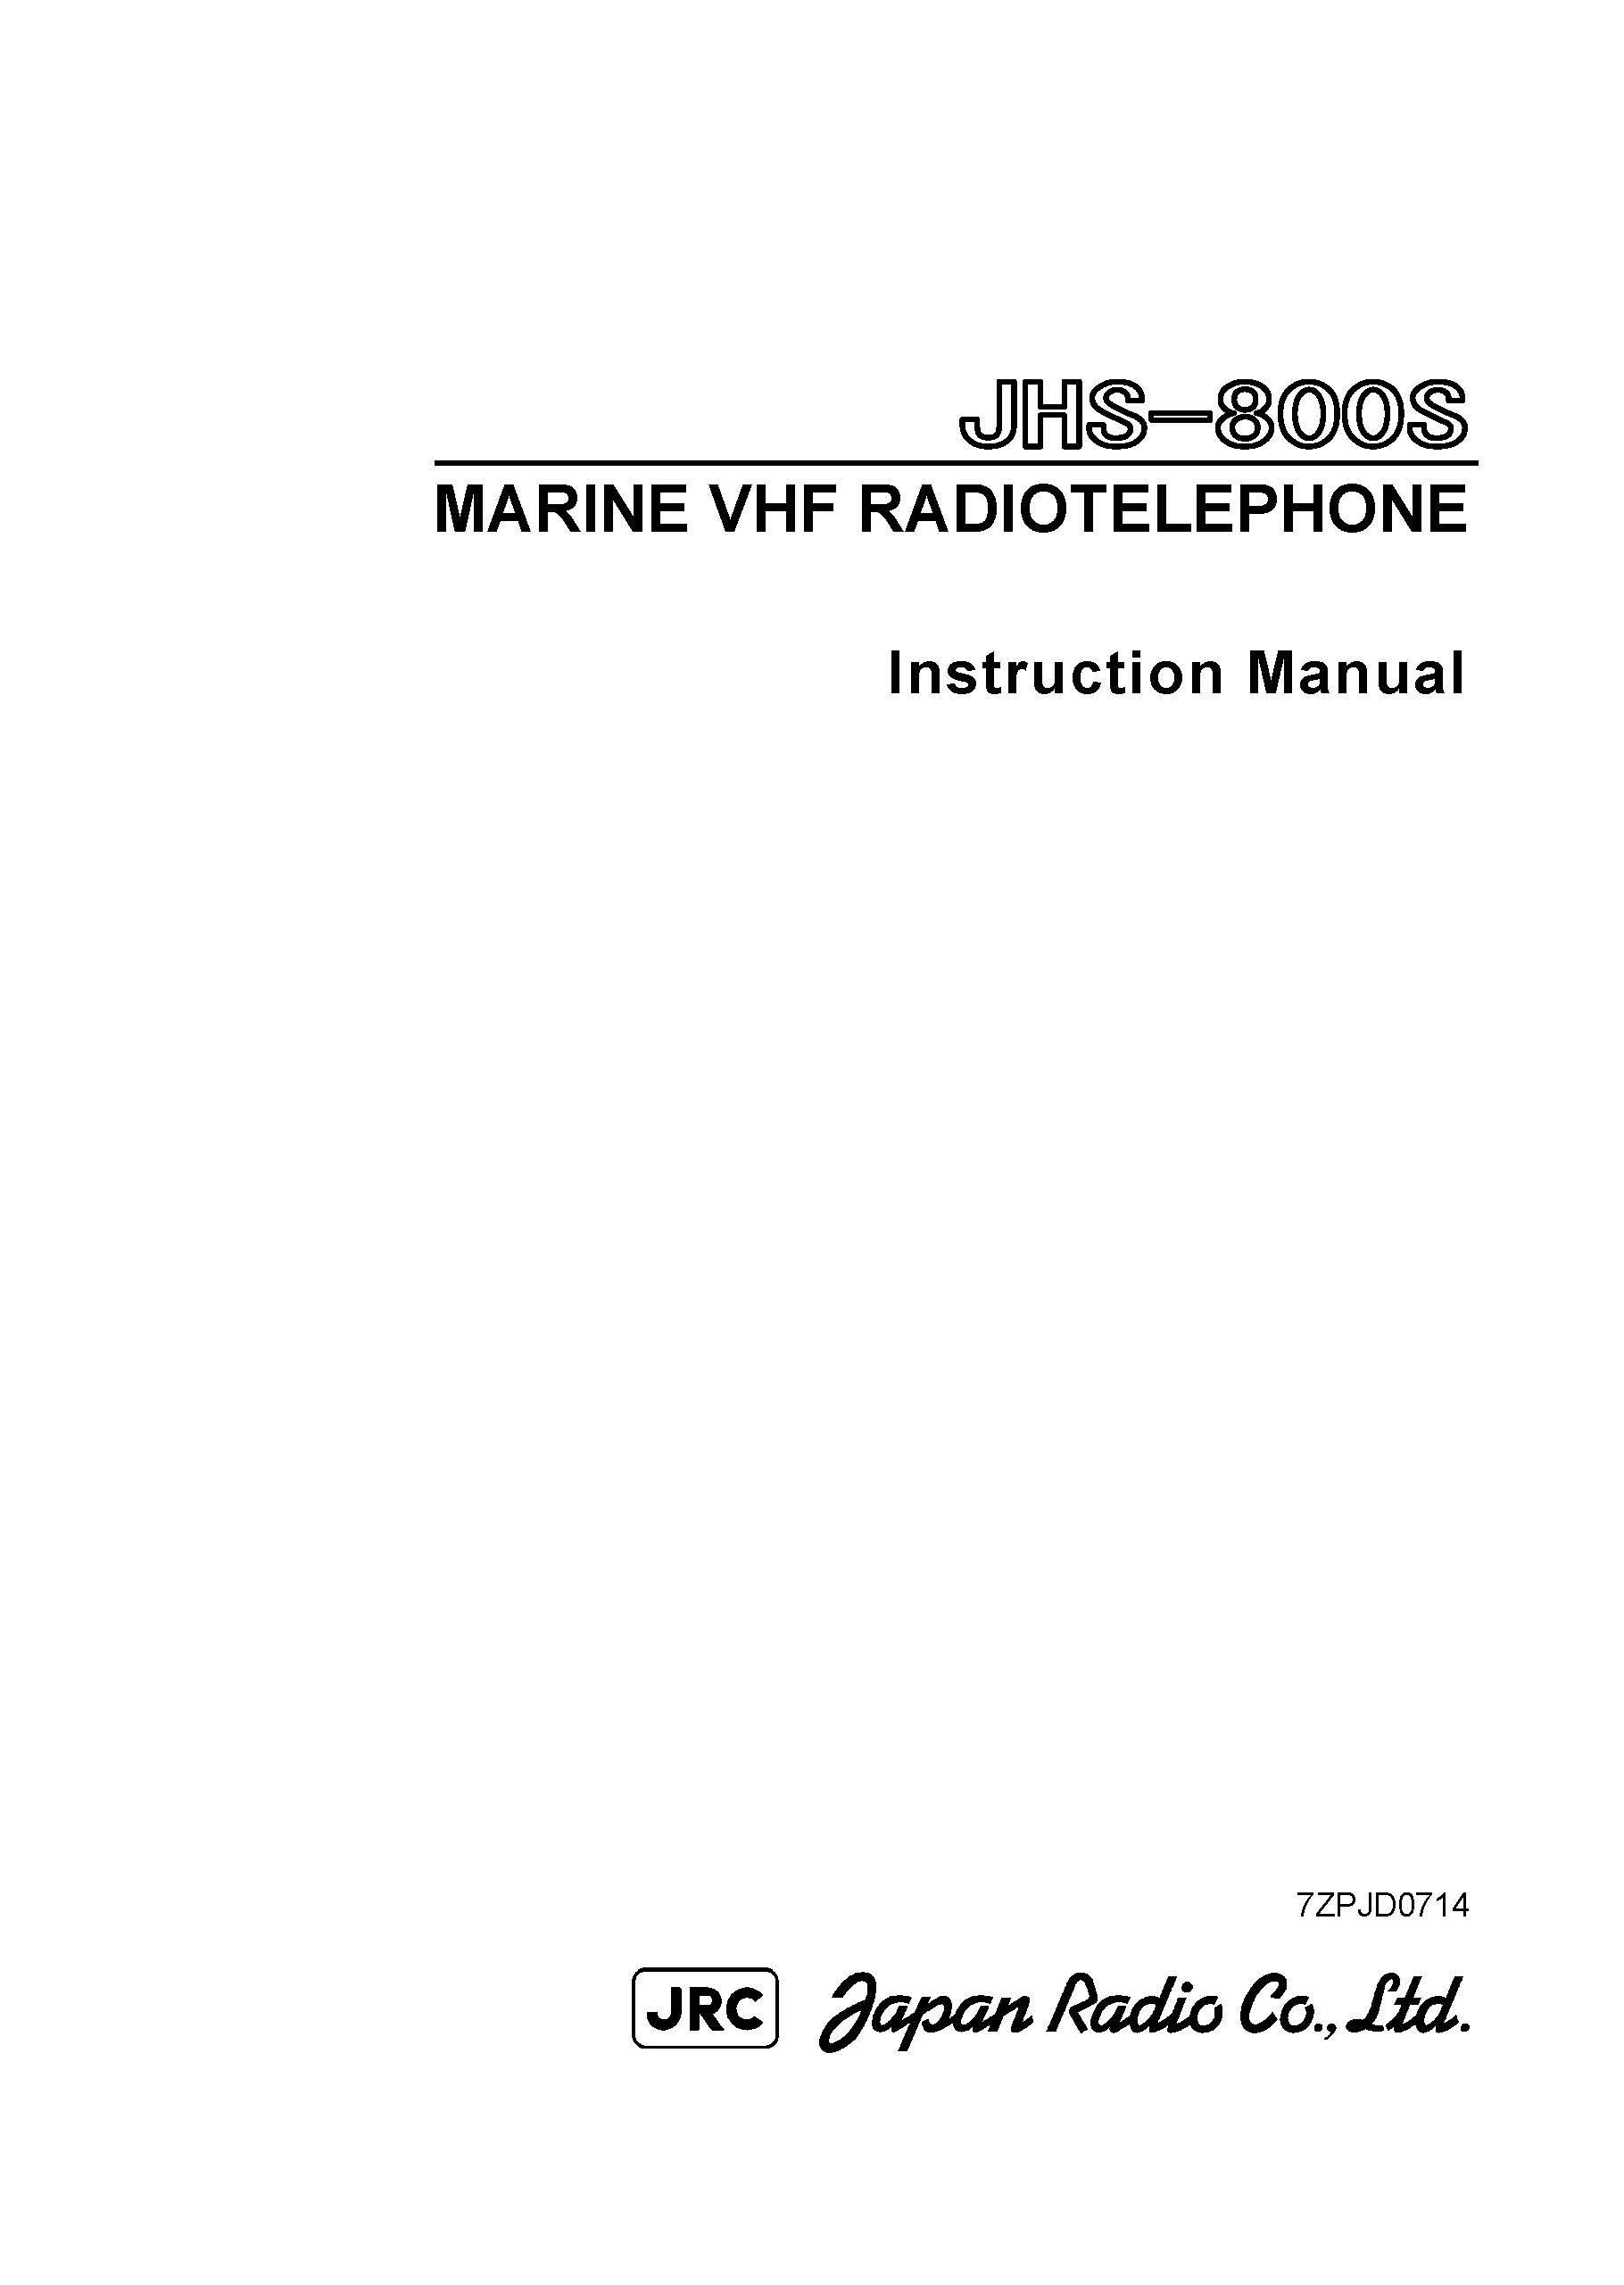 JHS 800s instructionmanual 1